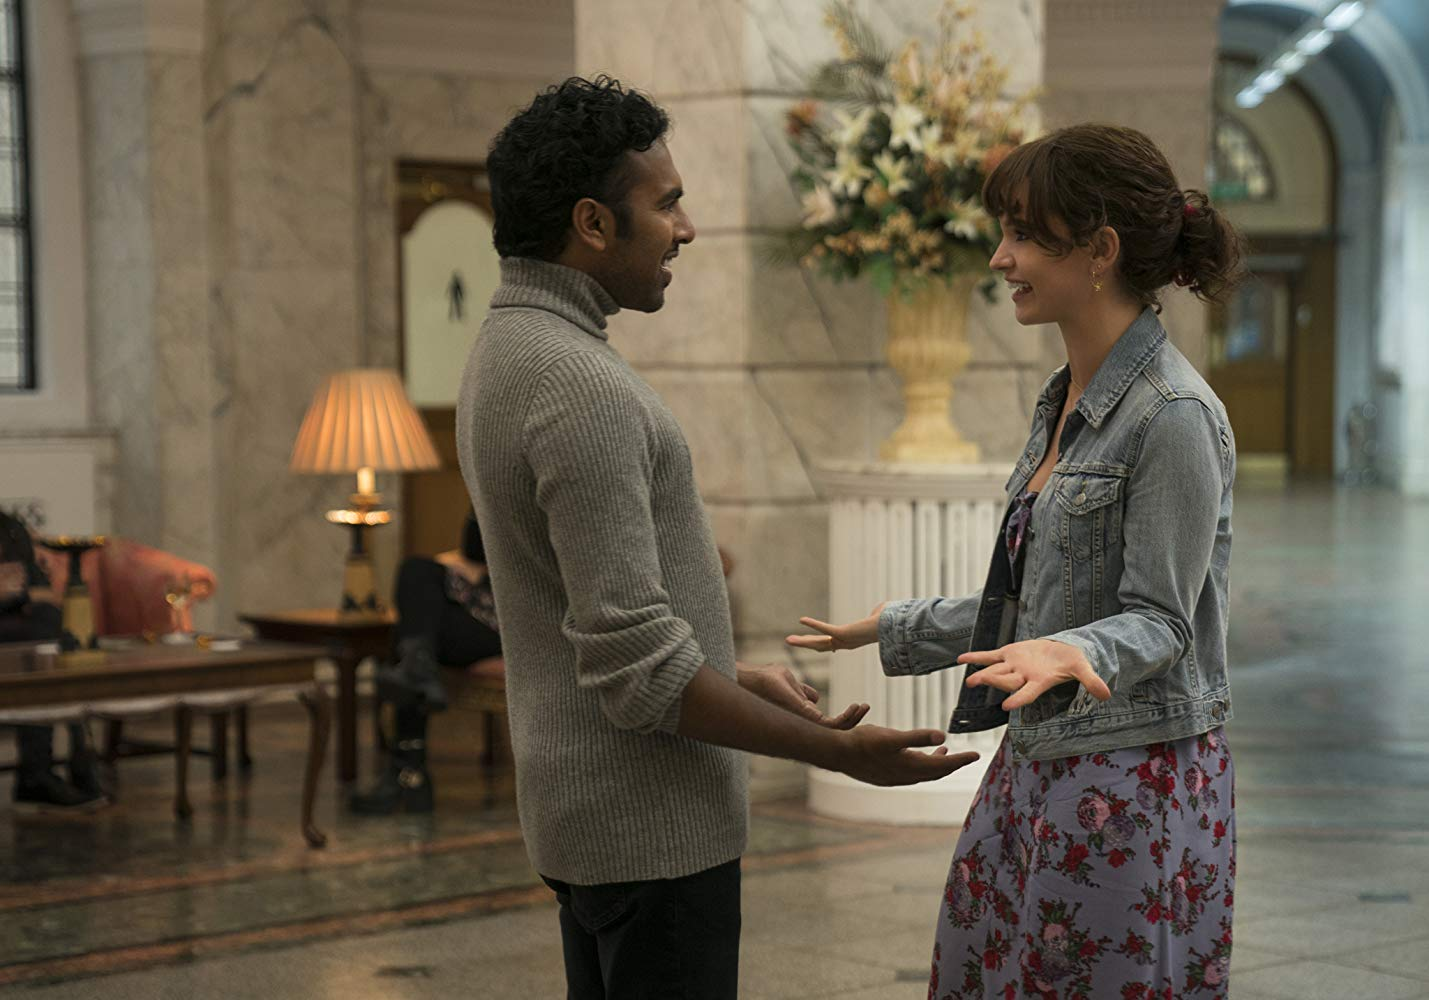 Thwarted loves - Himesh Patel and Lily James in Yesterday (2019)